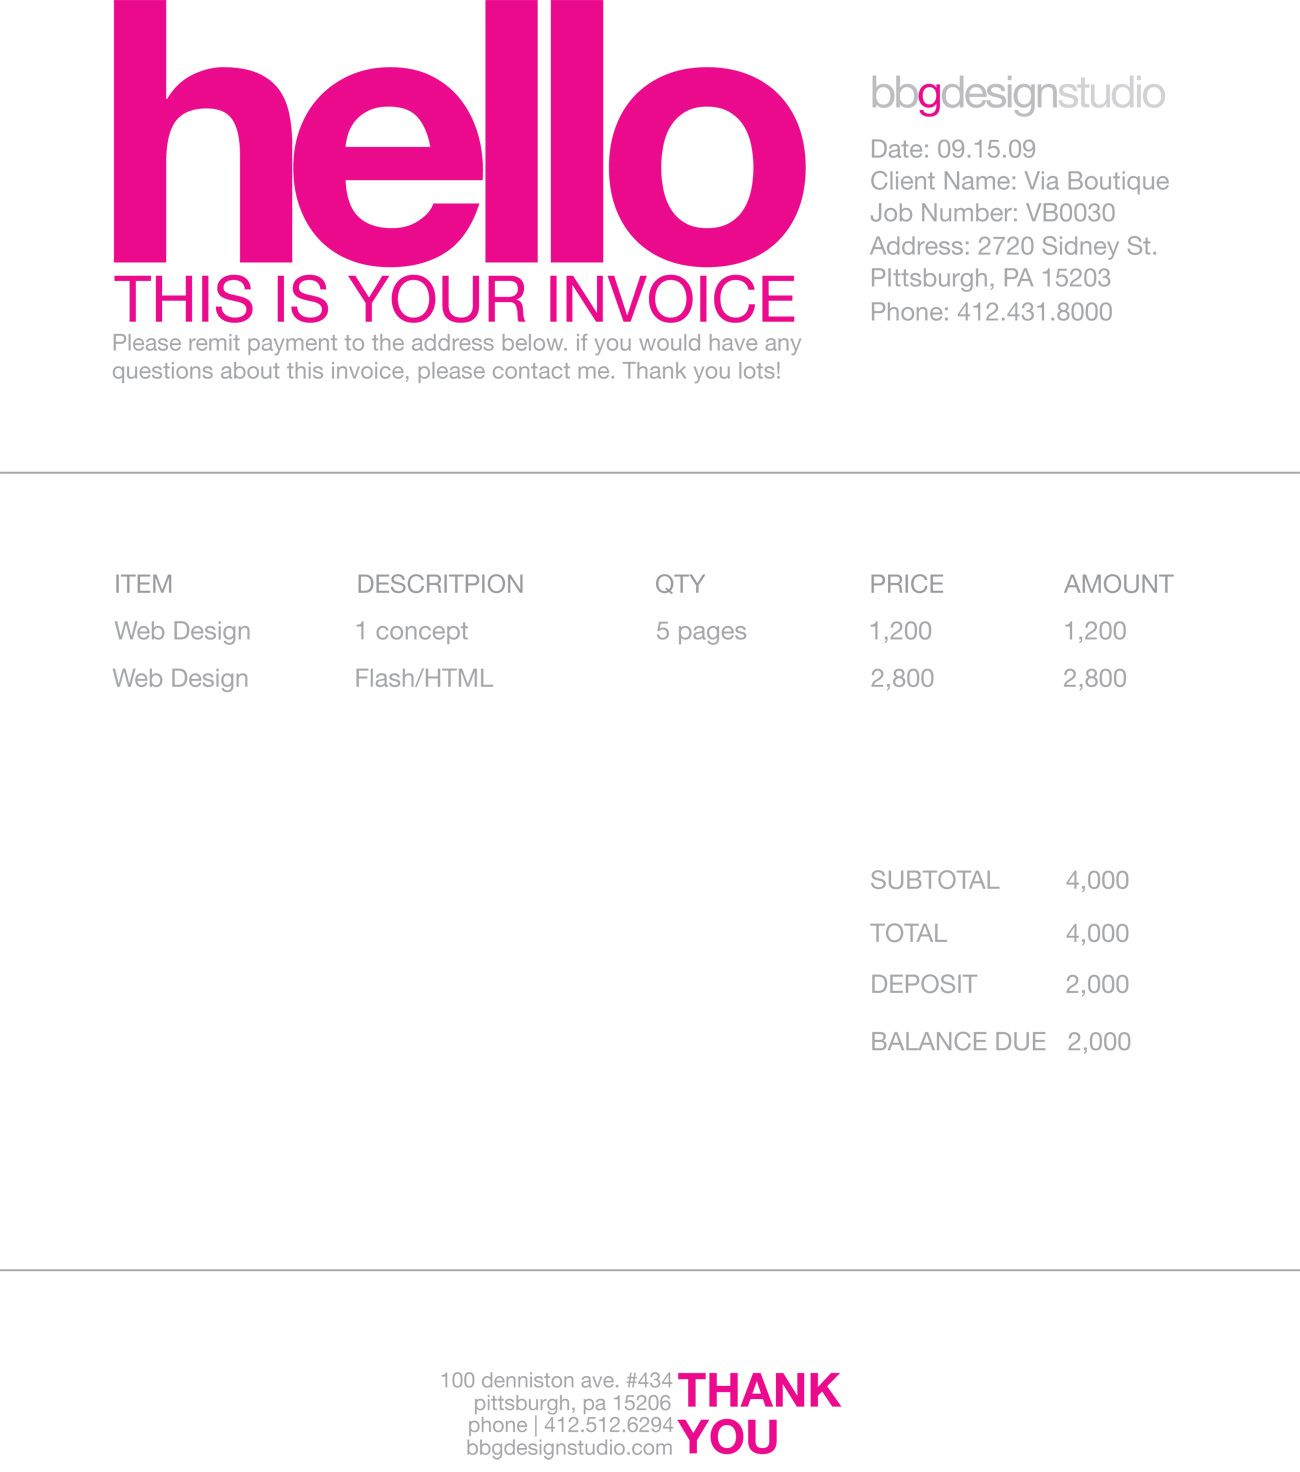 Howcanigettallerus  Scenic  Images About Invoice Design On Pinterest With Extraordinary Sample Receipt For Cash Besides Private Sale Receipt Furthermore House Rent Receipts Format With Delectable Sample Receipt Of Payment Template Also Deposit Payment Receipt Template In Addition Lost Post Office Receipt And Property Tax Receipts As Well As Receipt Printer Font Additionally Free Sales Receipt Form From Pinterestcom With Howcanigettallerus  Extraordinary  Images About Invoice Design On Pinterest With Delectable Sample Receipt For Cash Besides Private Sale Receipt Furthermore House Rent Receipts Format And Scenic Sample Receipt Of Payment Template Also Deposit Payment Receipt Template In Addition Lost Post Office Receipt From Pinterestcom